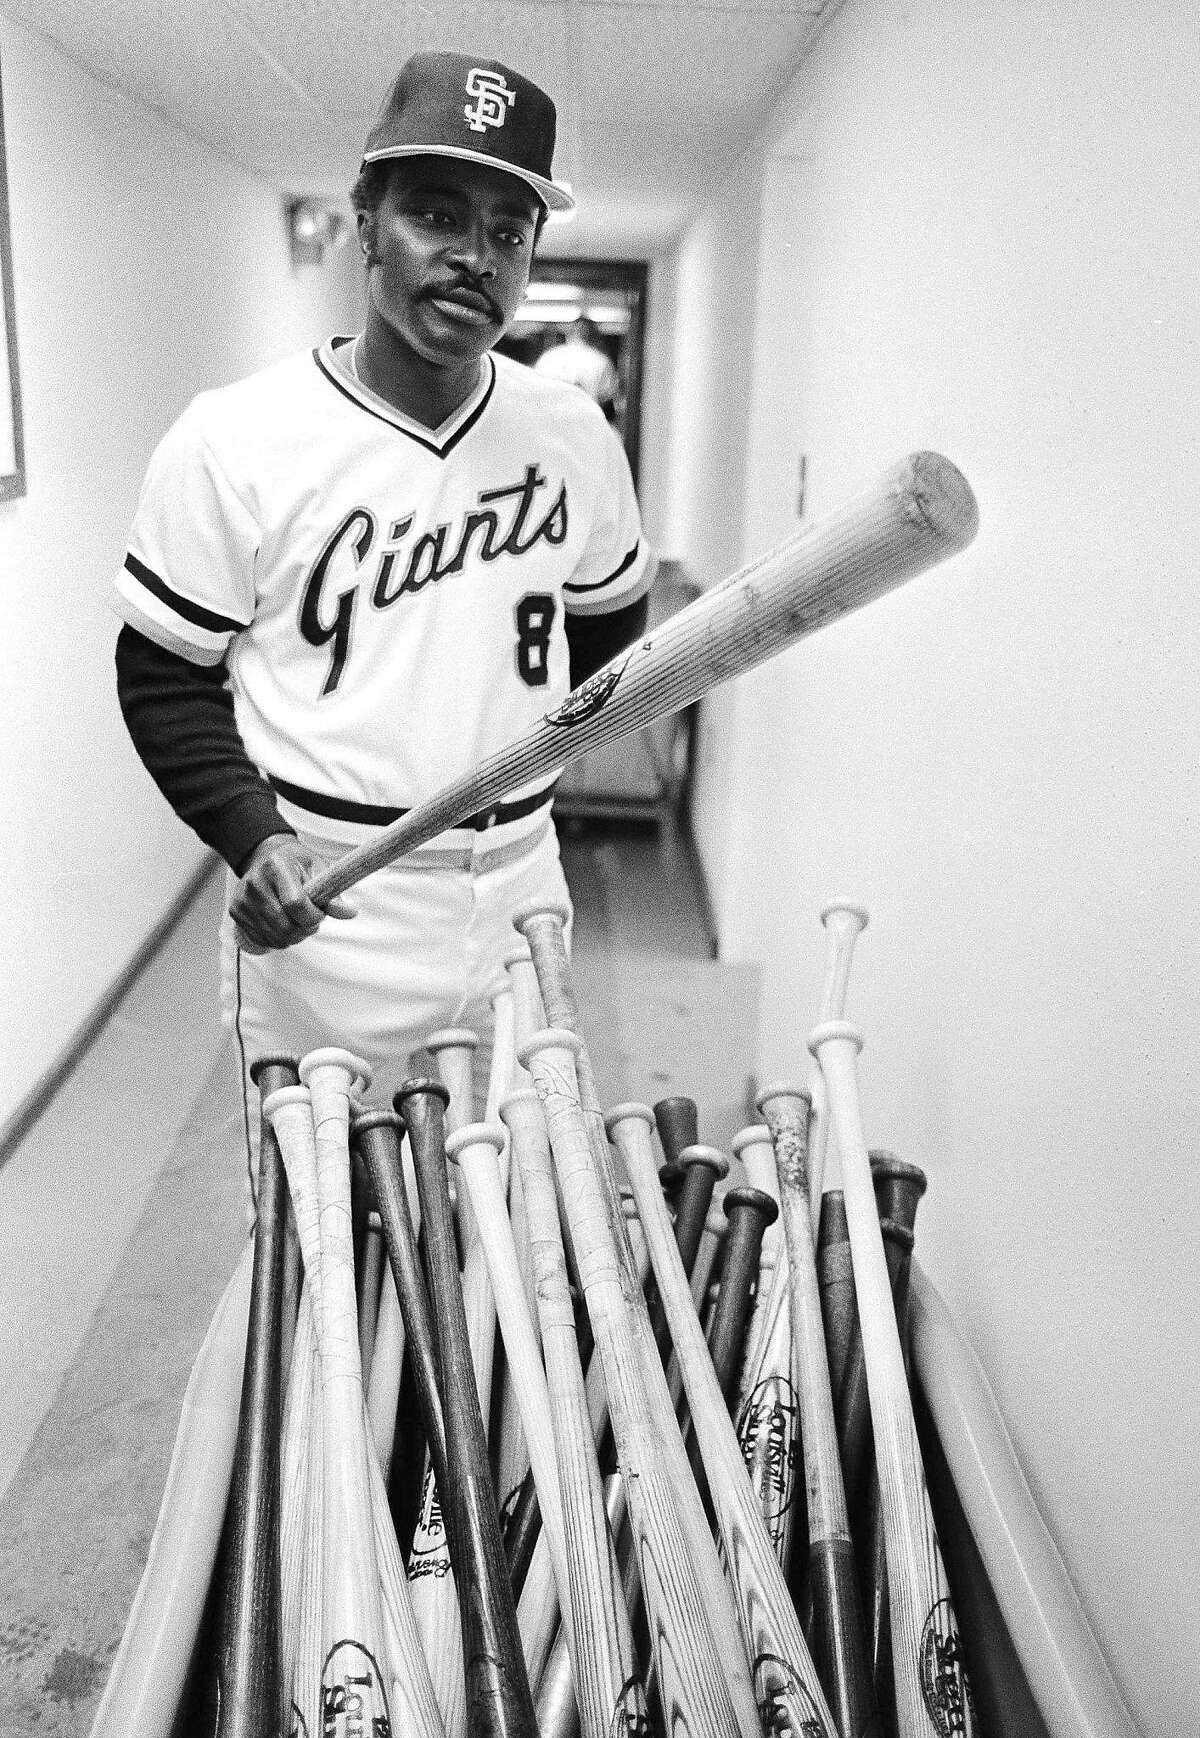 San Francisco Giants second baseman Joe Morgan who knows his way around the major leagues, selects a bat from a tub full in Giants clubhouse in Scottsdale, Arizona, on March 18, 1982. Among the most popular of models is the S-2 used by Vern Stevens. (AP Photo/Sal Veder)